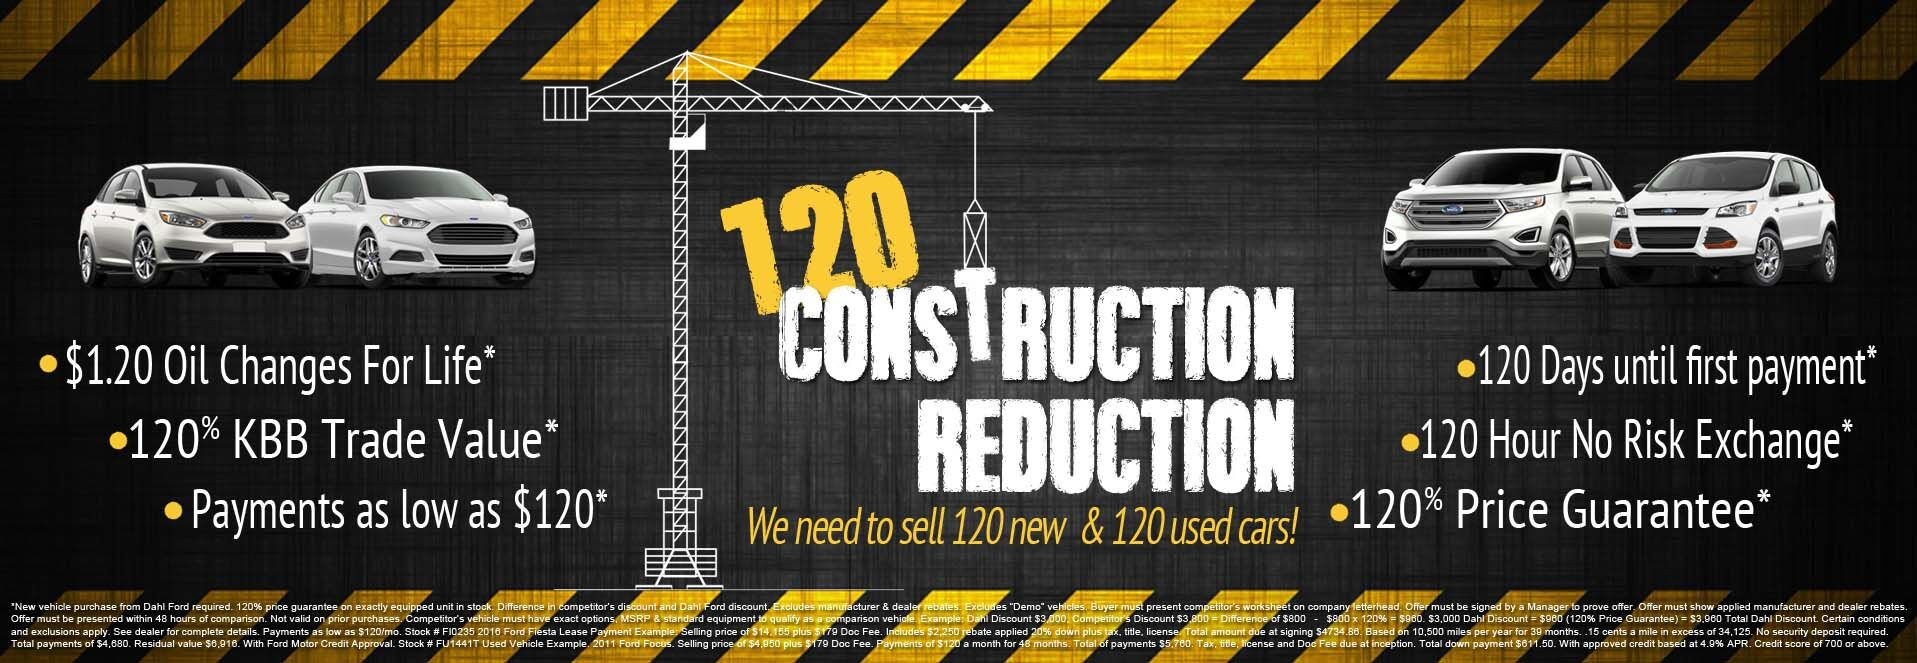 120 Construction Reduction